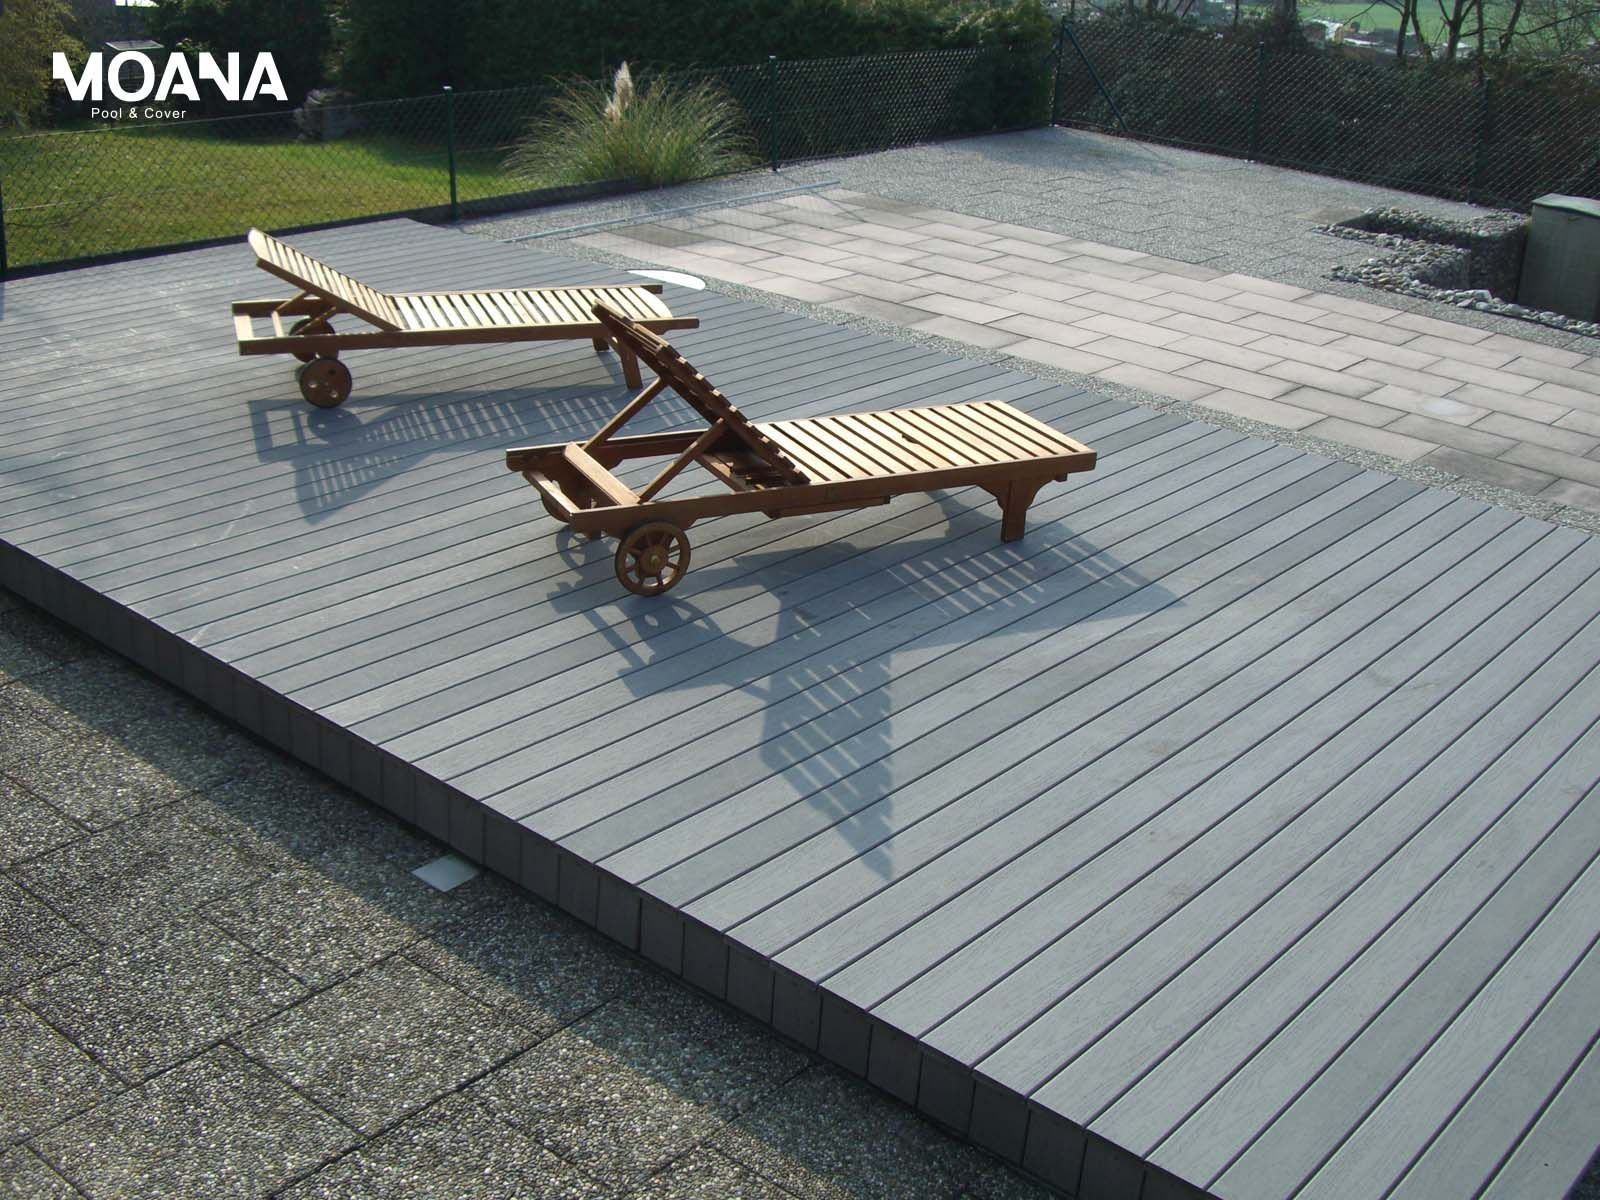 Schwimmbadabdeckung Begehbar sliding swimming pool cover and terrace movable pooldeck begehbare